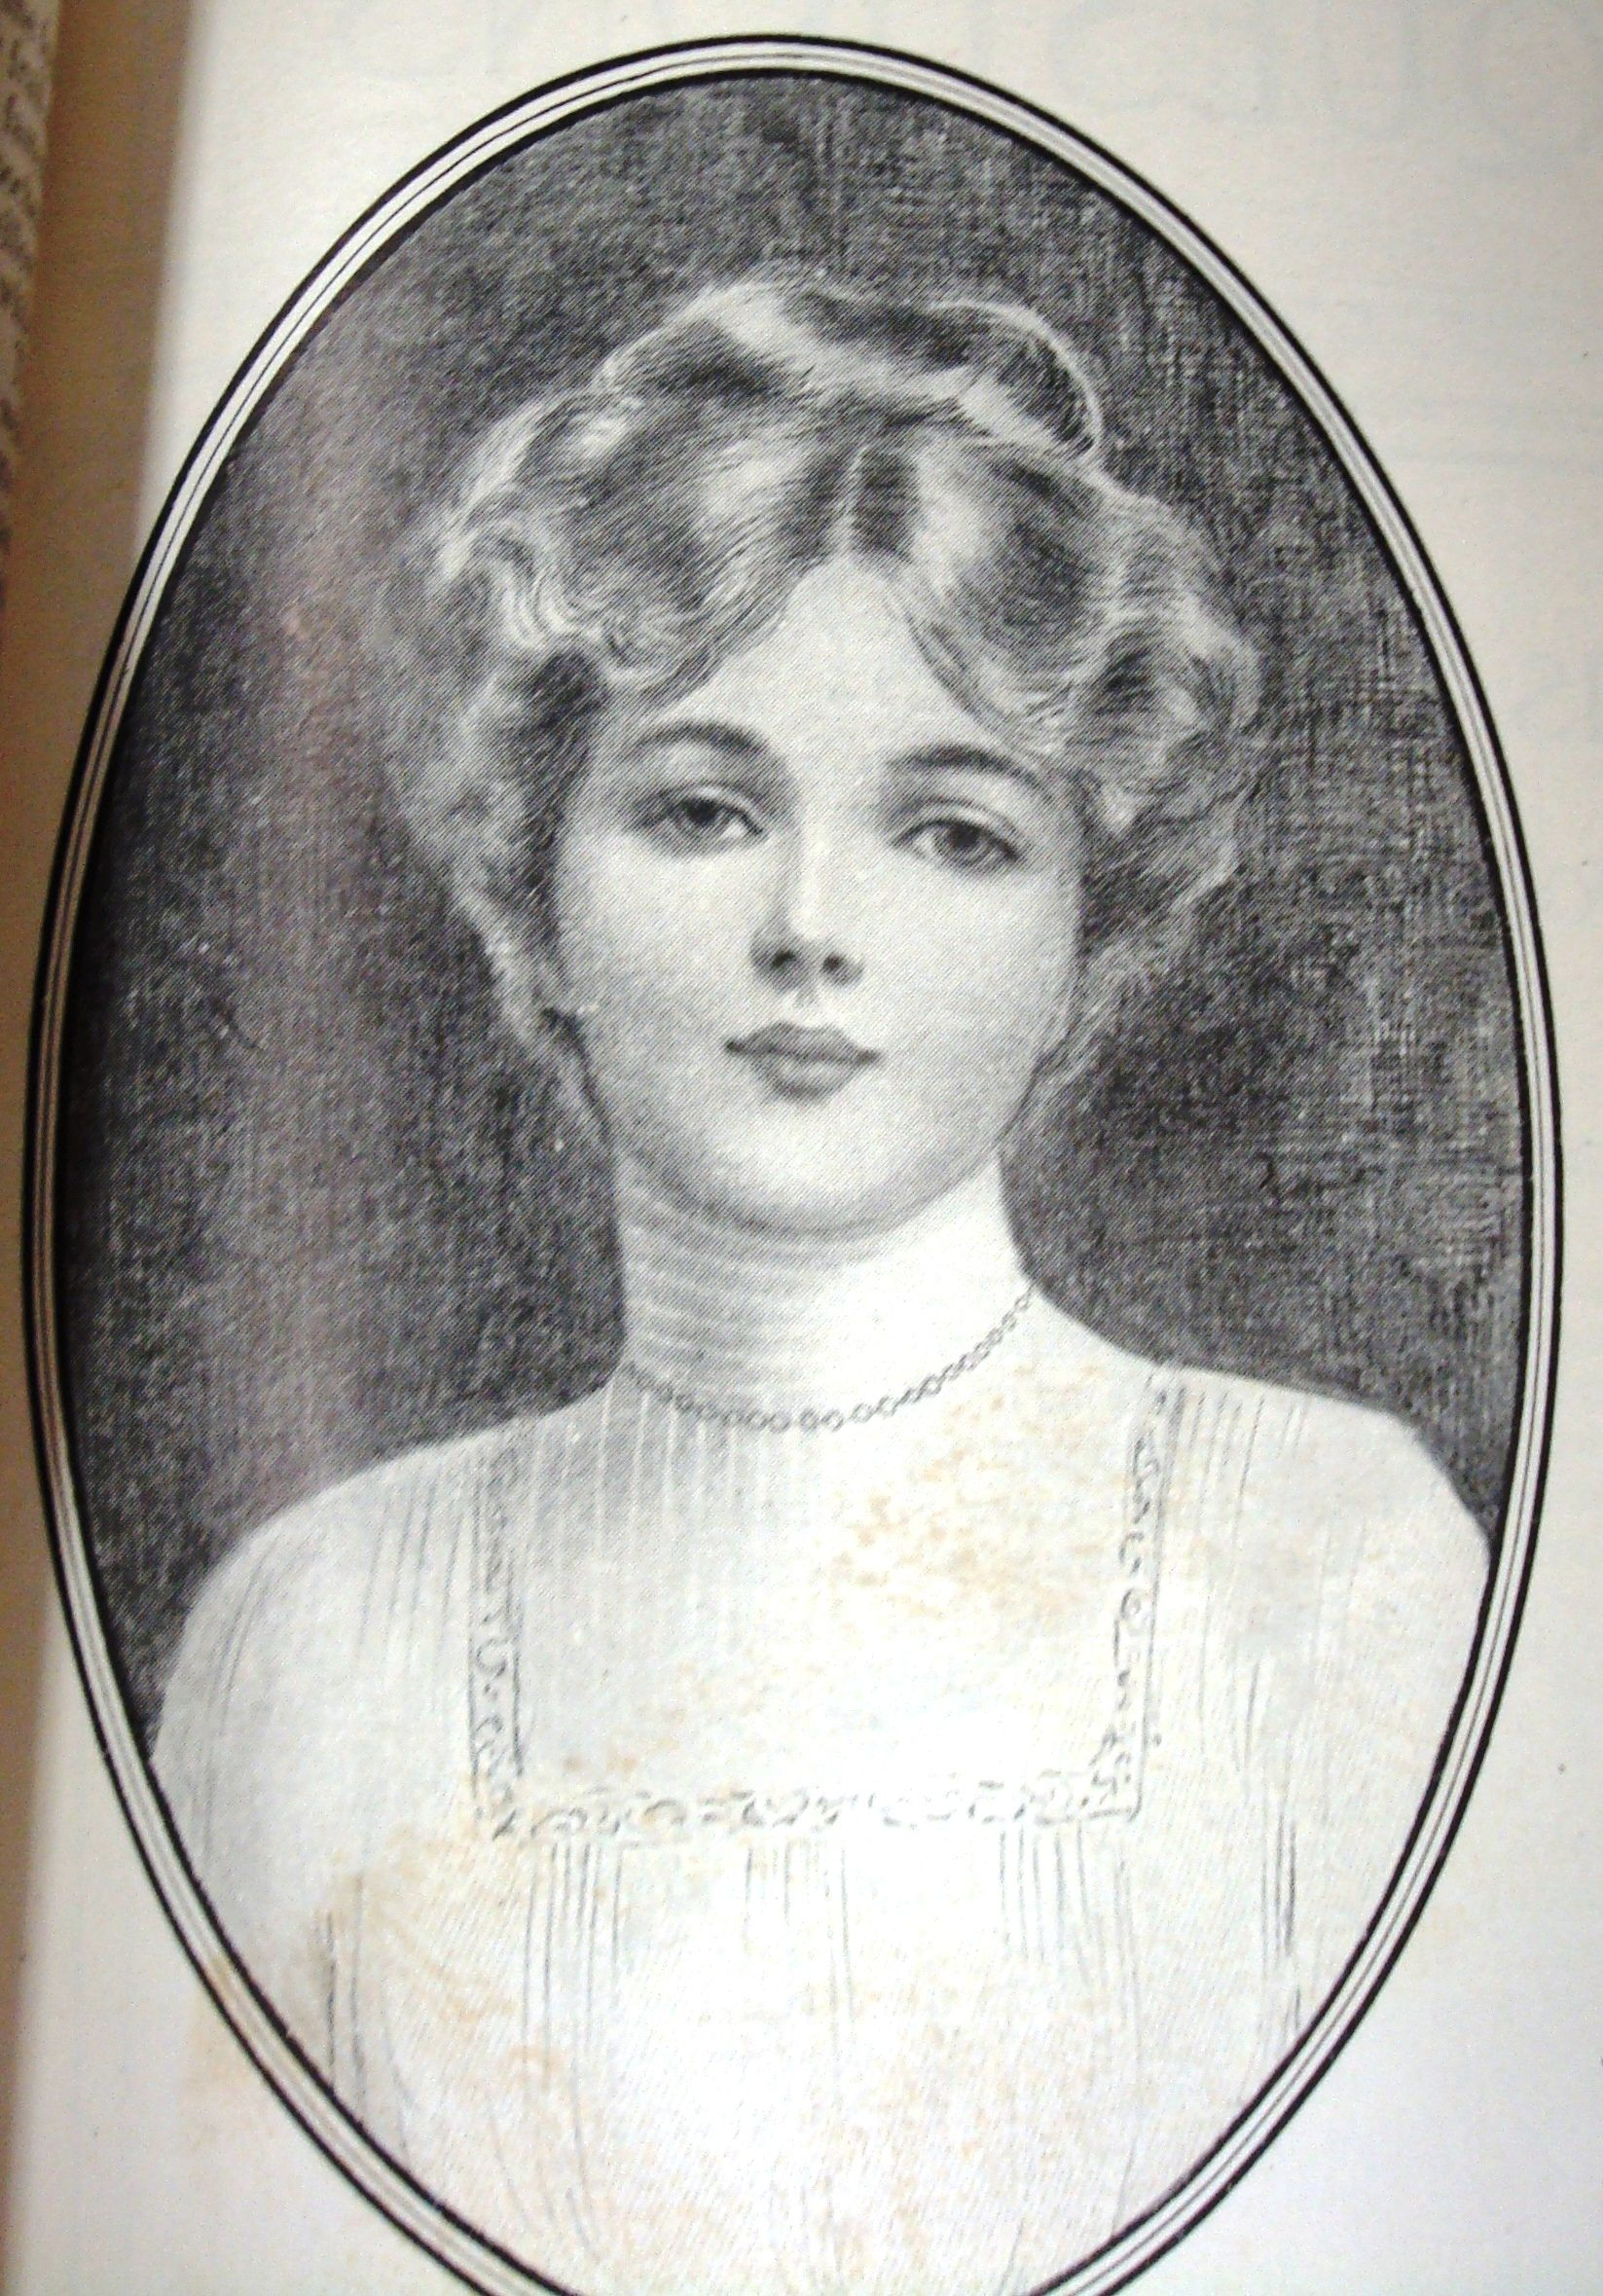 1912 hairstyles for women - google search | show research in